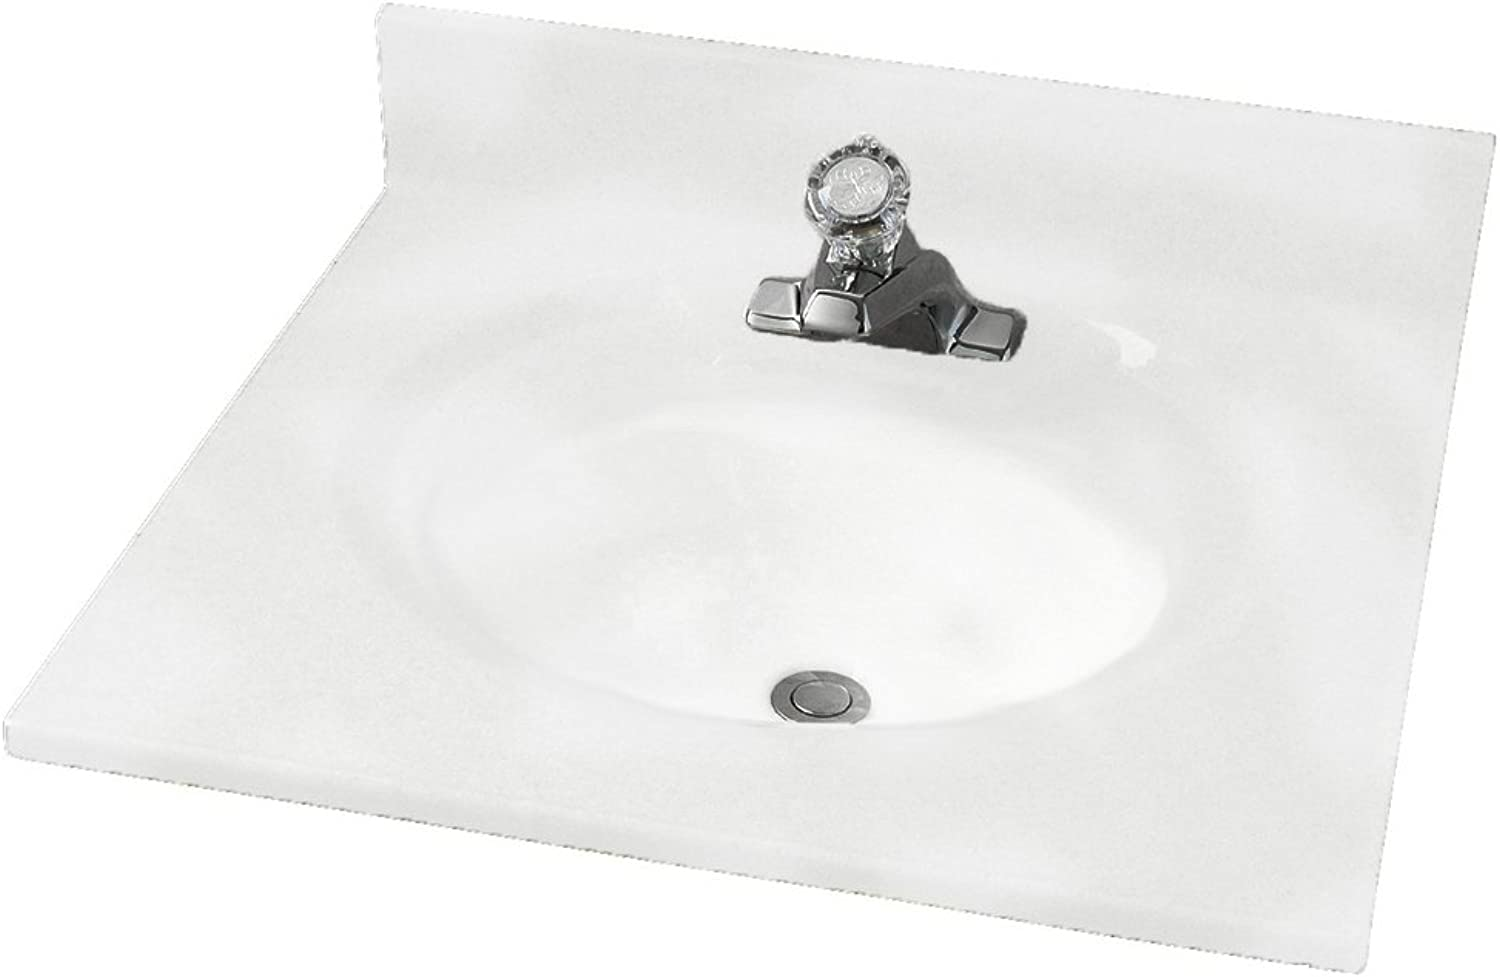 American Standard CMA8197.801 Astra Lav 19-Inch by 17-Inch Cultured Marble Vanity Top, Swirl (White)